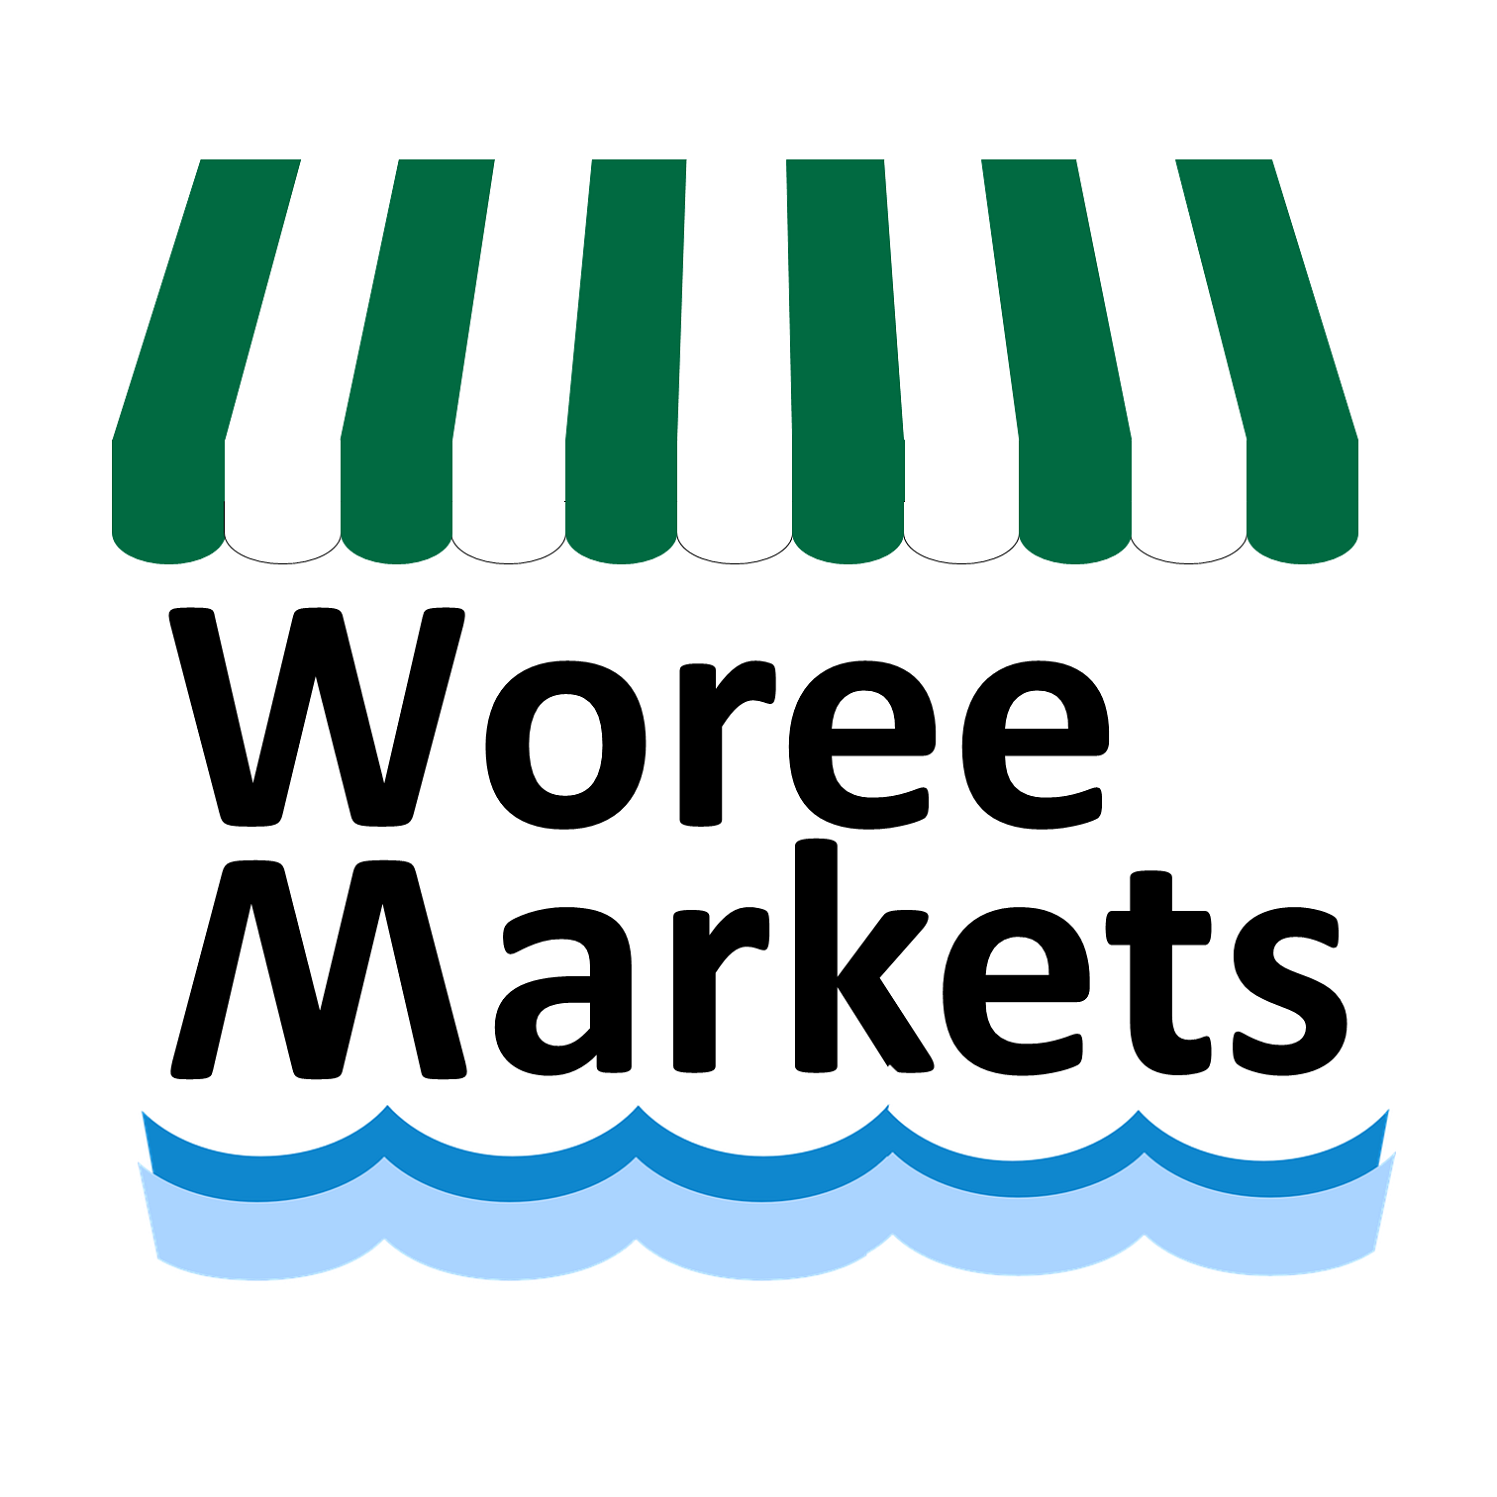 Woree Markets primary image